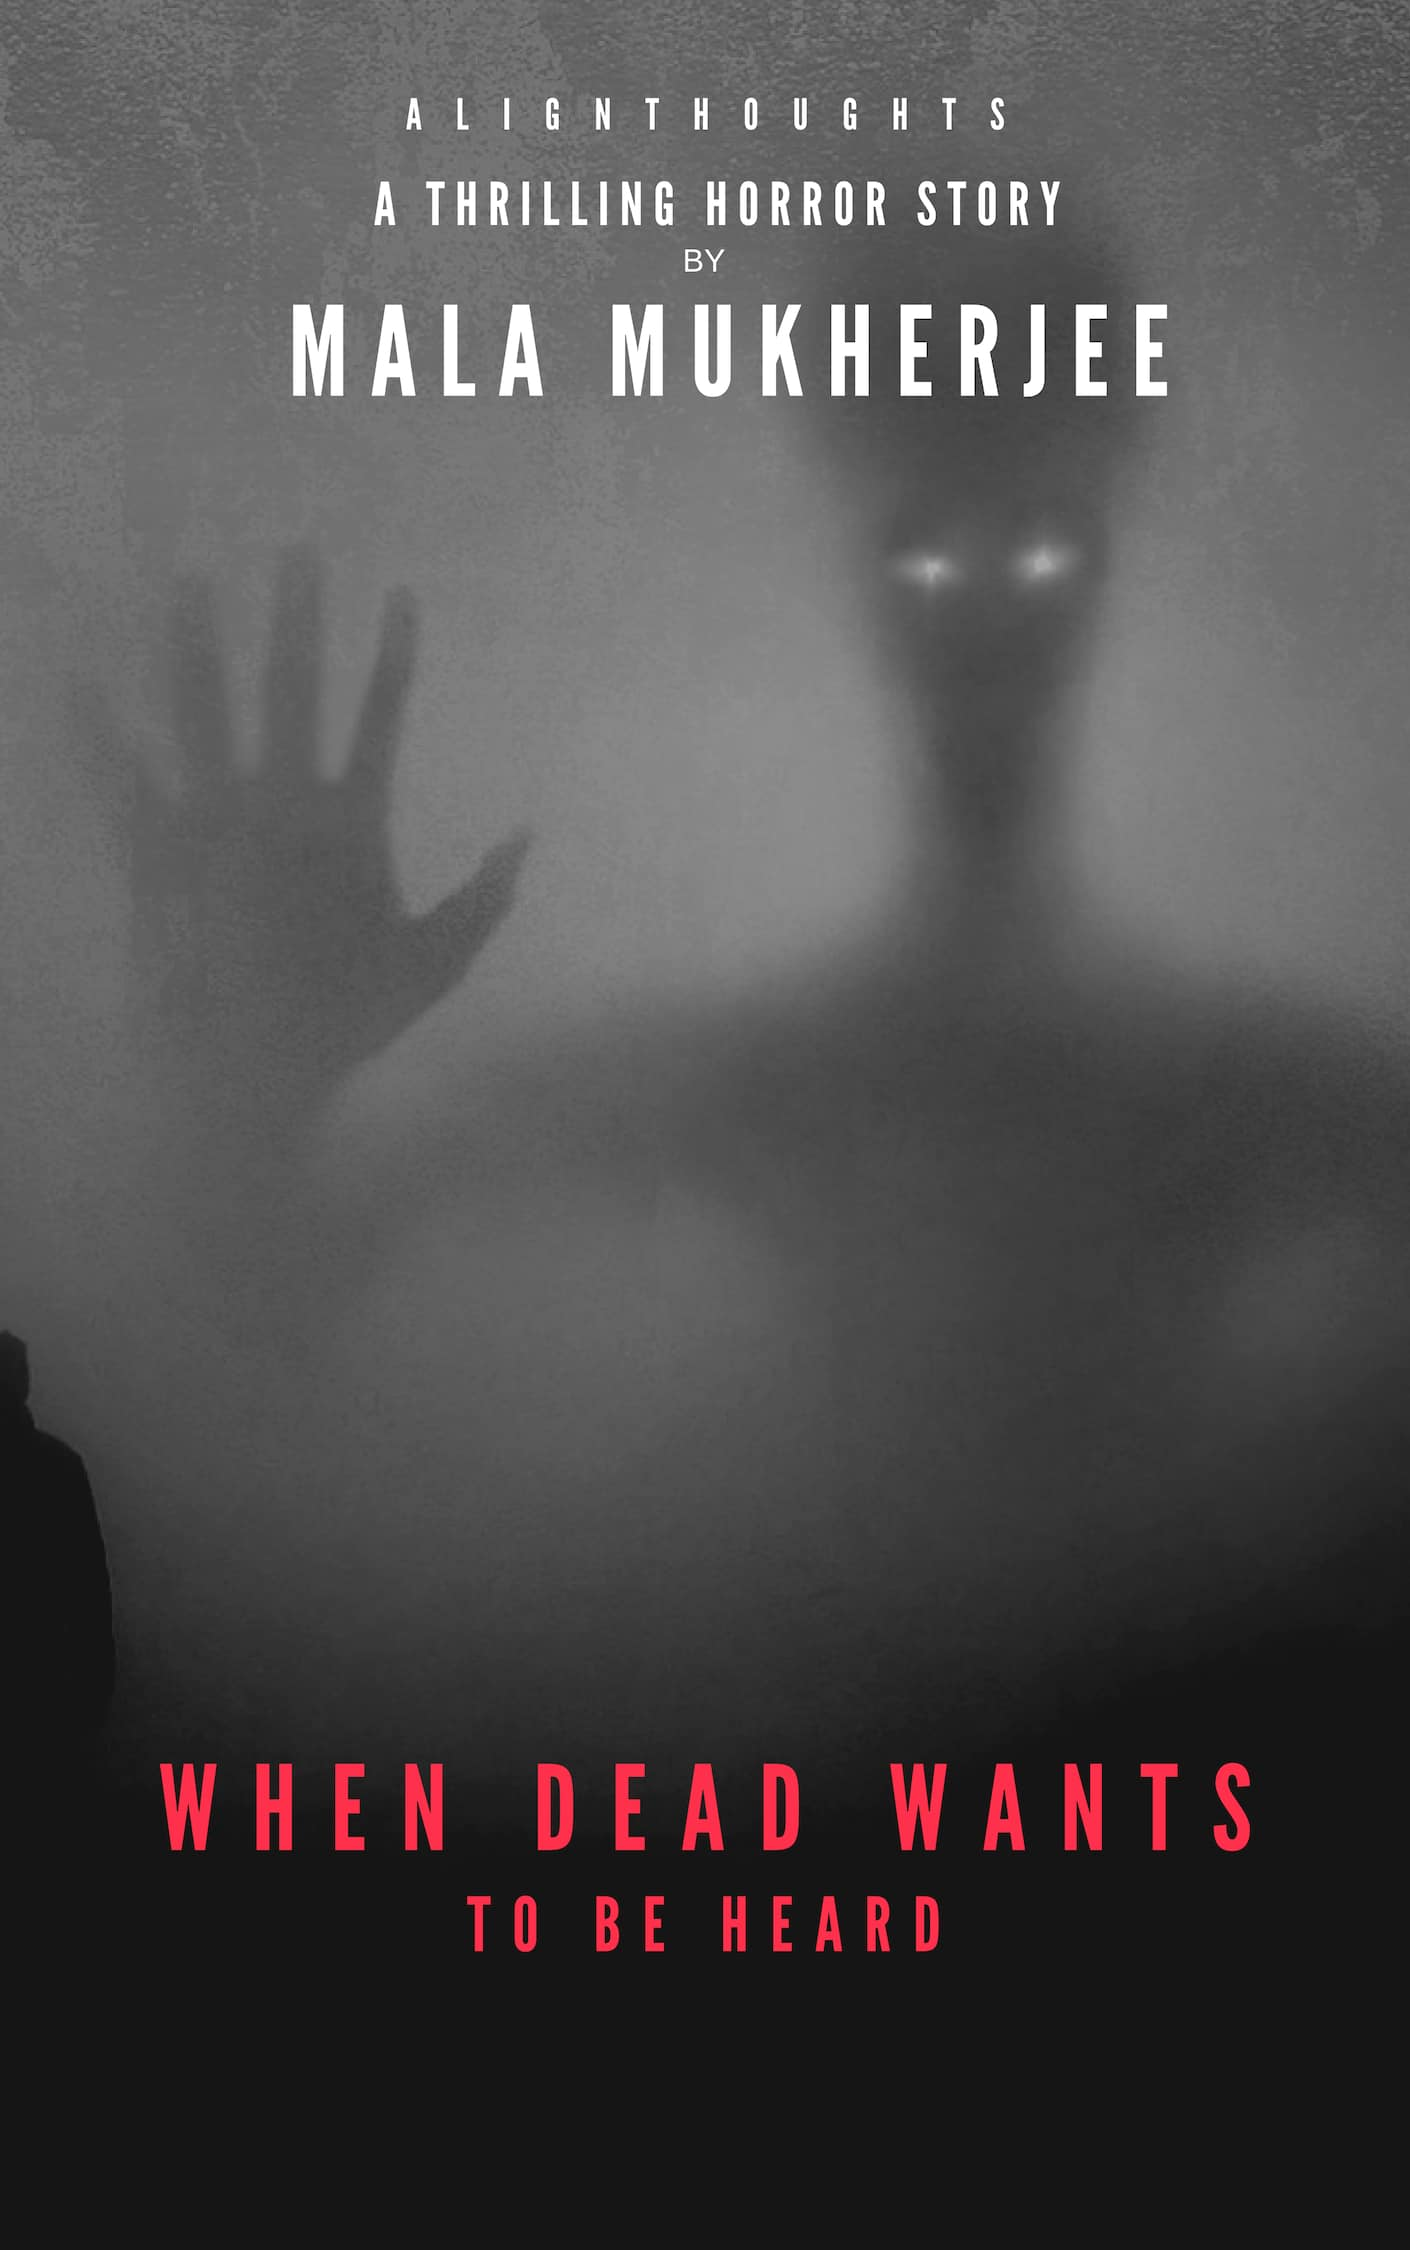 When Dead Wants To Be Heard - alignthoughts